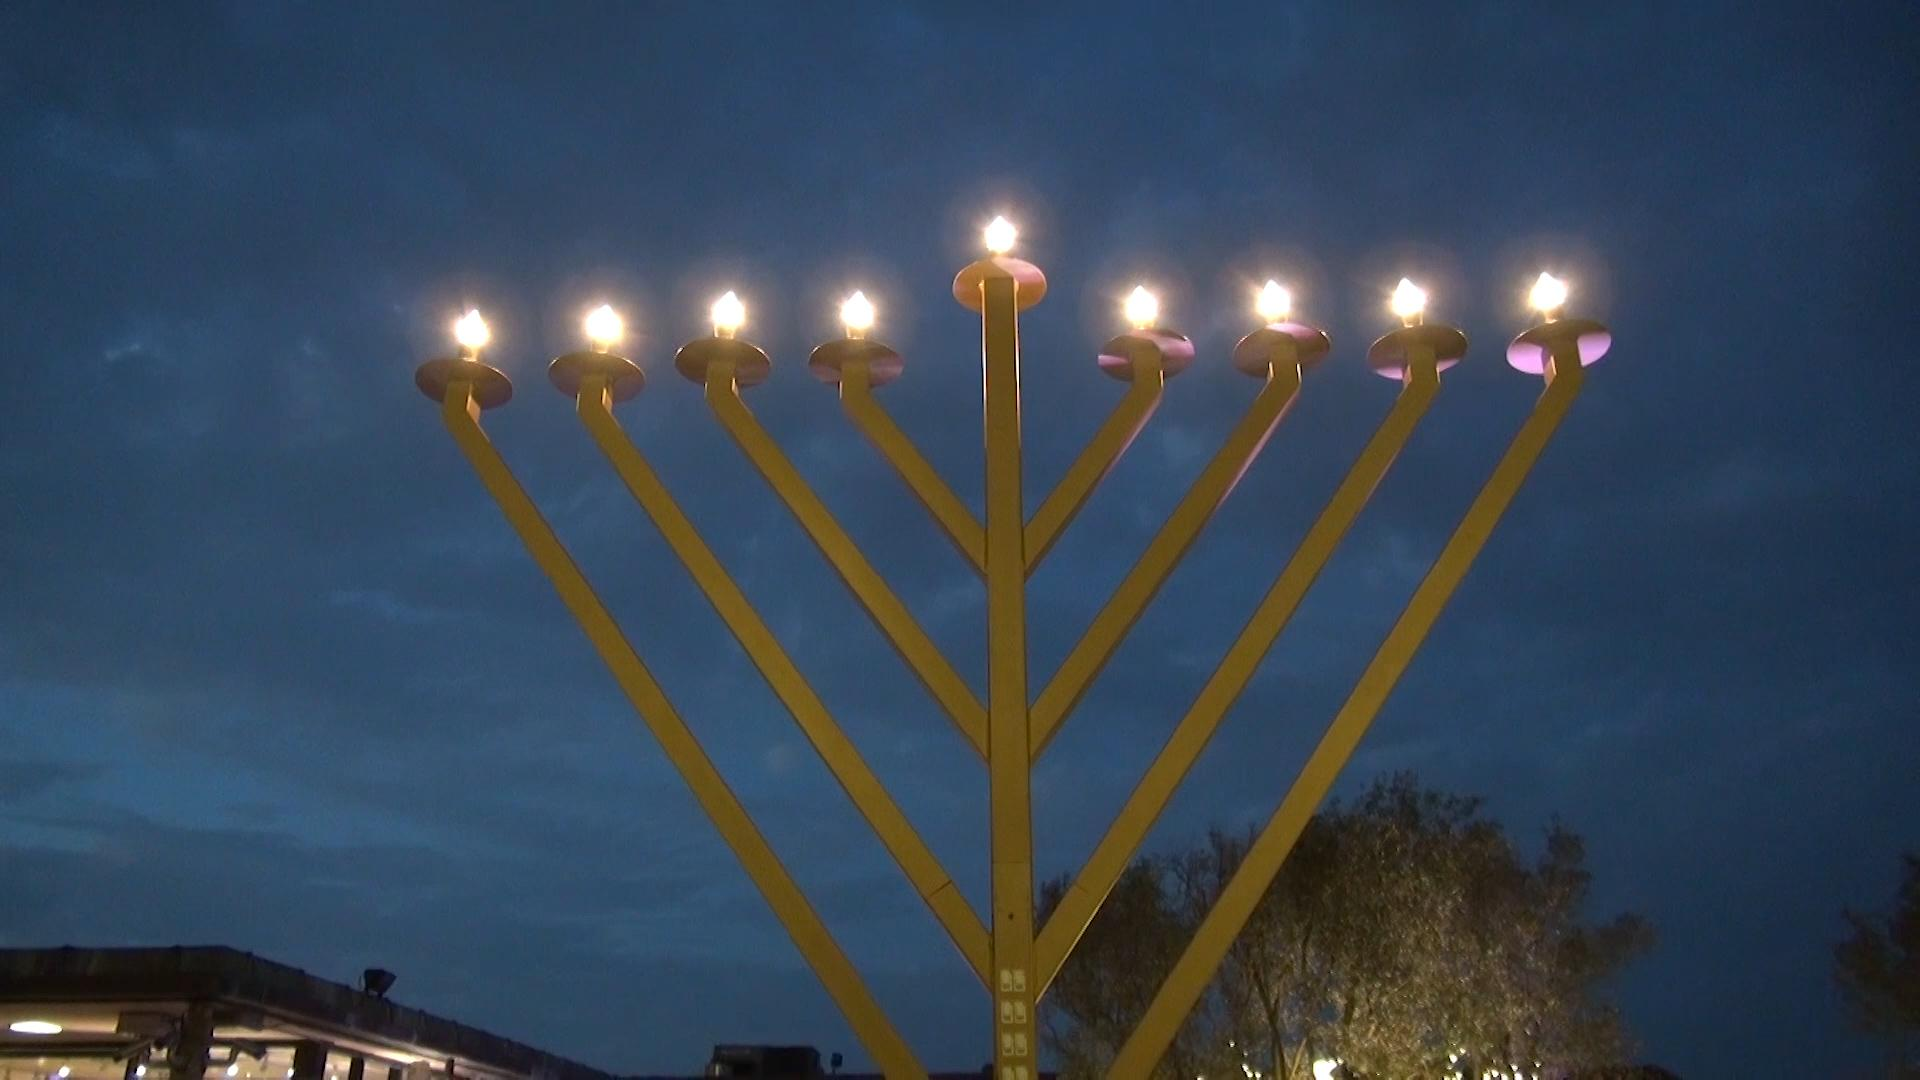 Jewish Community Center celebrates last night of Hanukkah in Ghirardelli Square